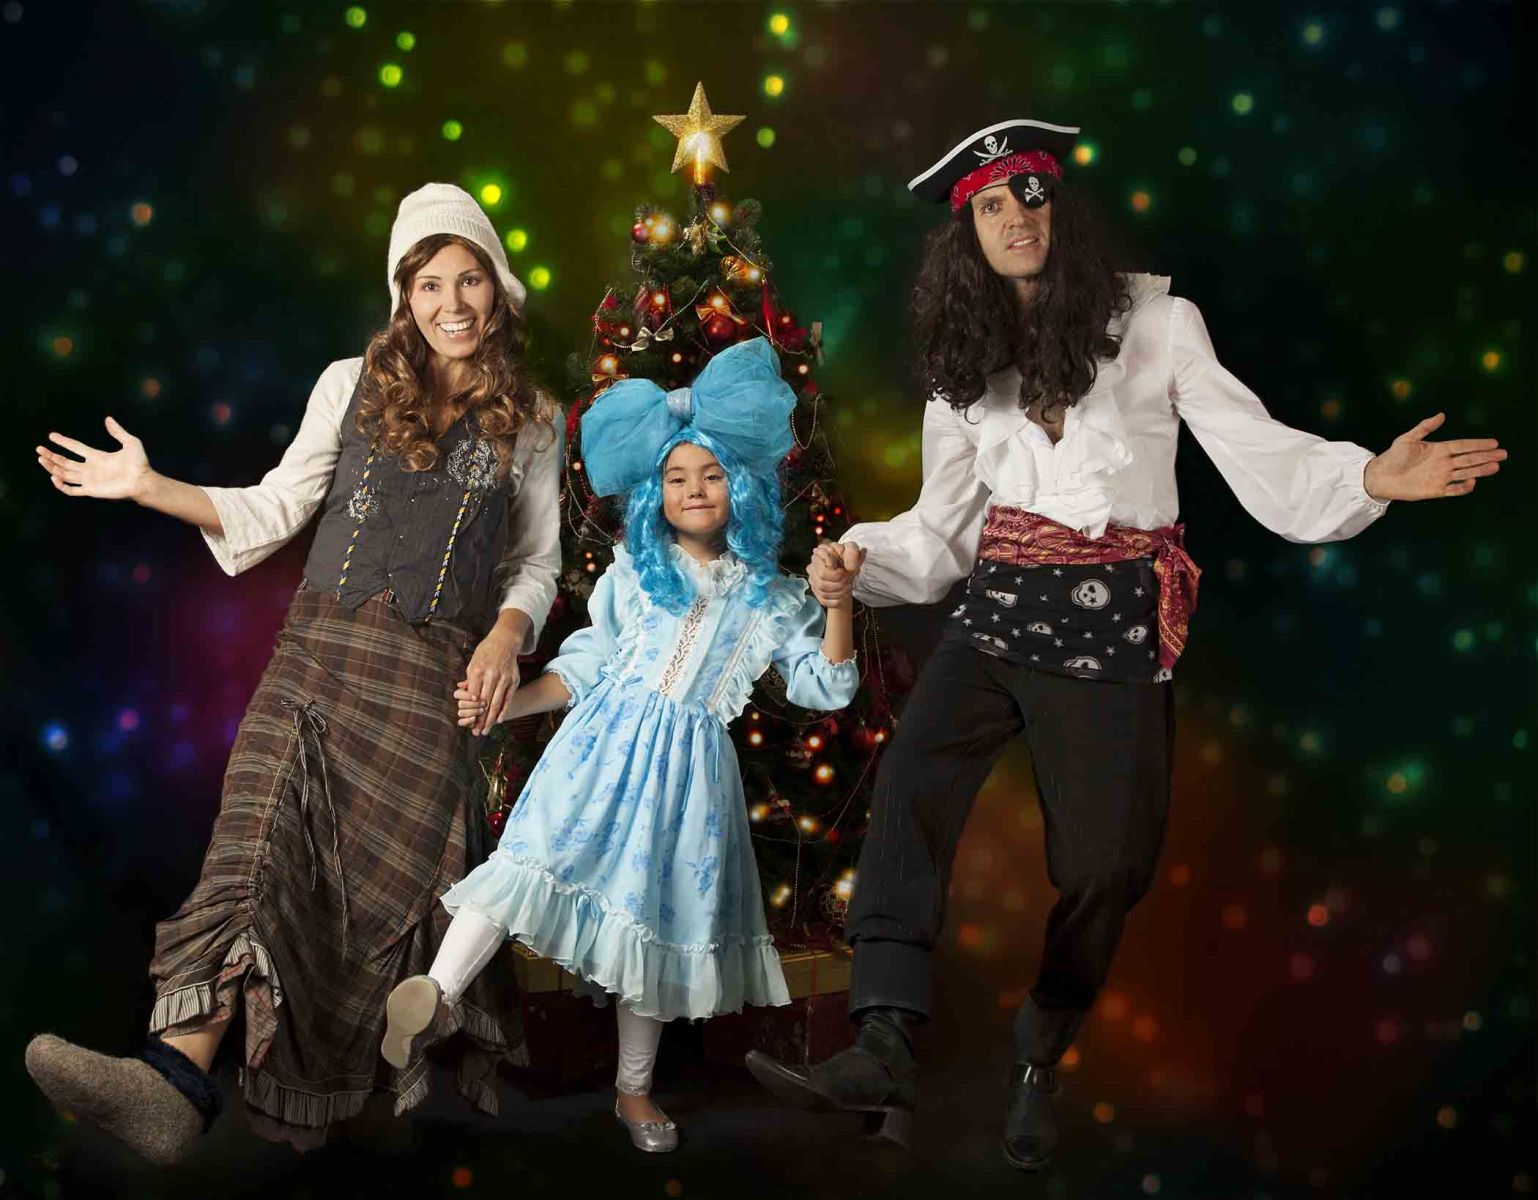 Christmas Shows In Myrtle Beach 2019 Christmas at Pirates Voyage Dinner & Show 2019 | Myrtle Beach Events